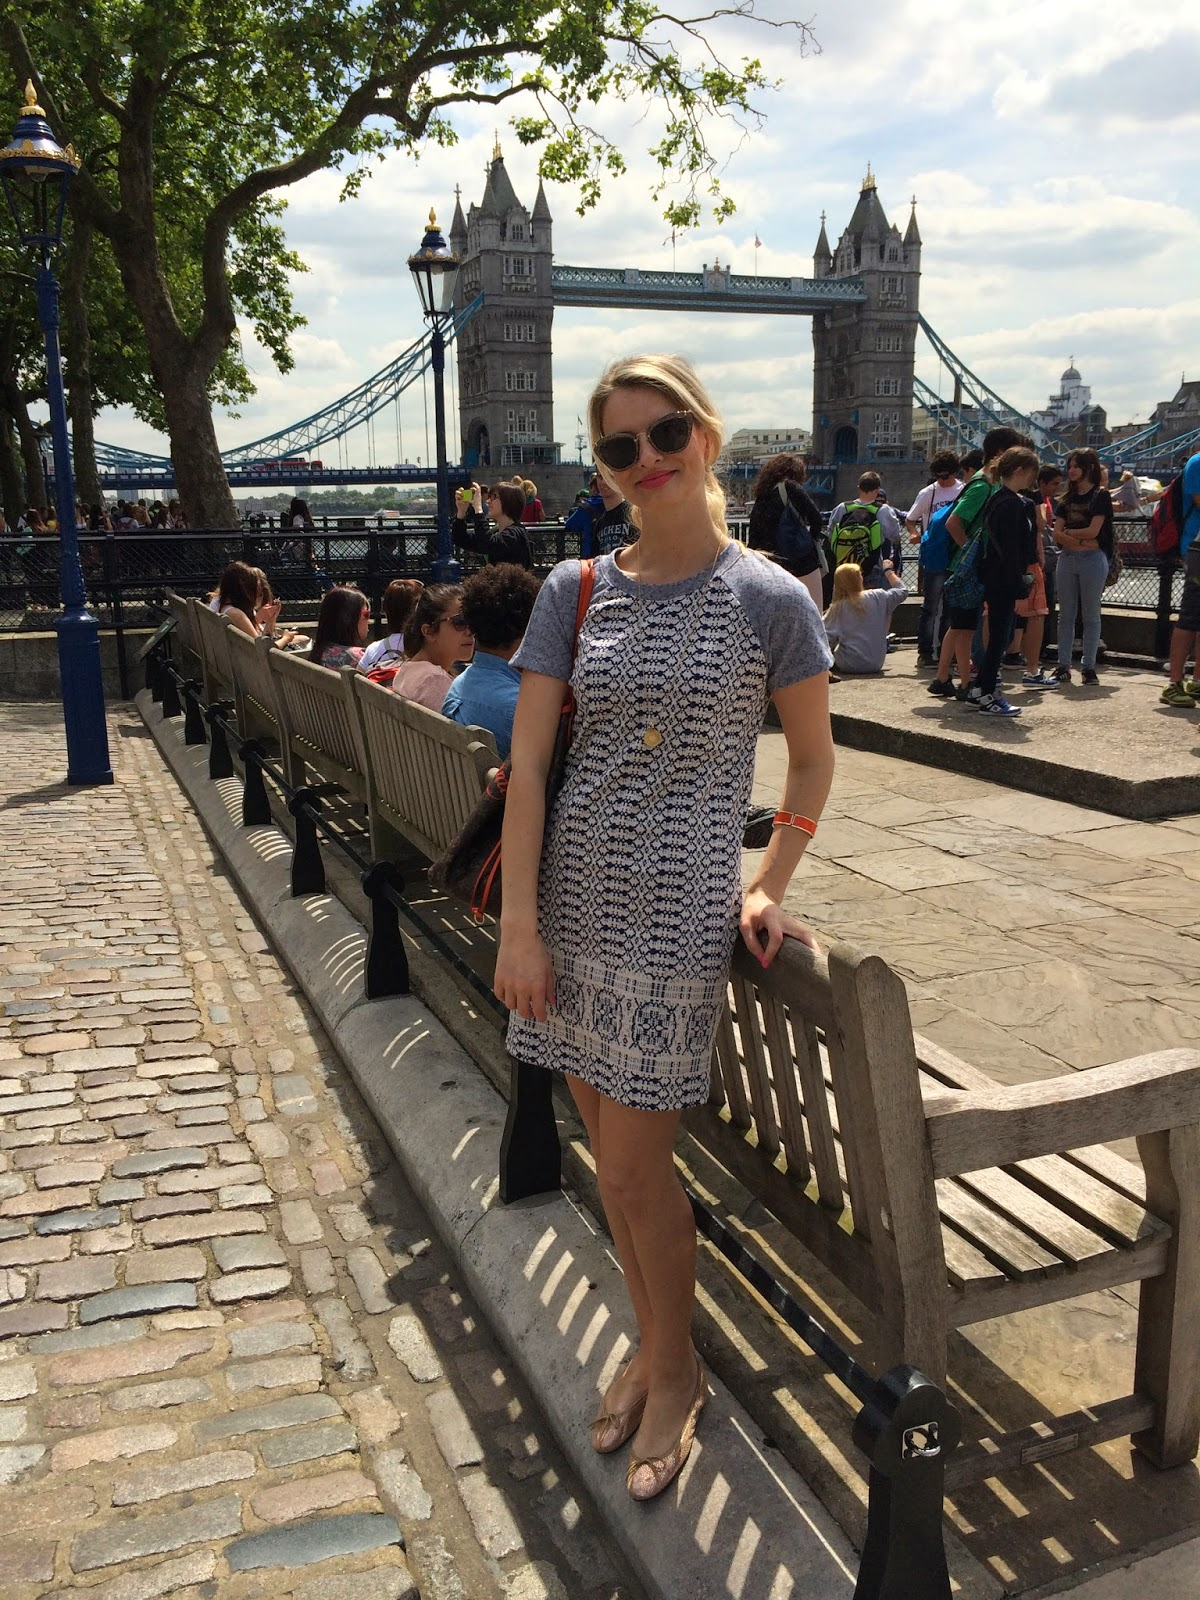 Monica vinader, hobb's dress, tower bridge, blue dress, fashion blogger, london fashion blogger